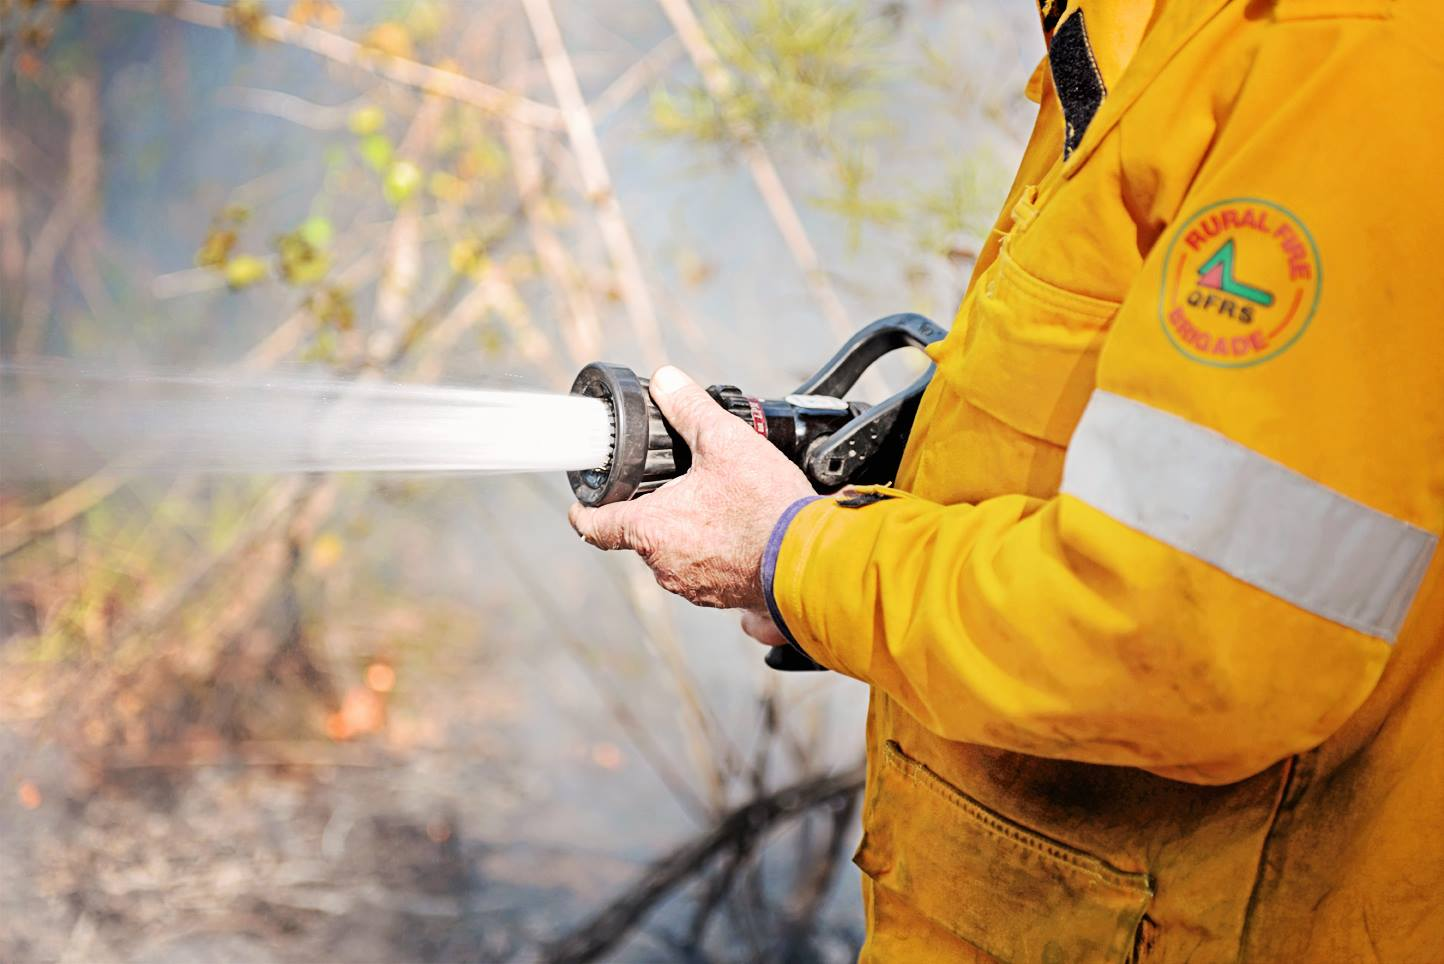 Hot and windy conditions propel rise in fire activity